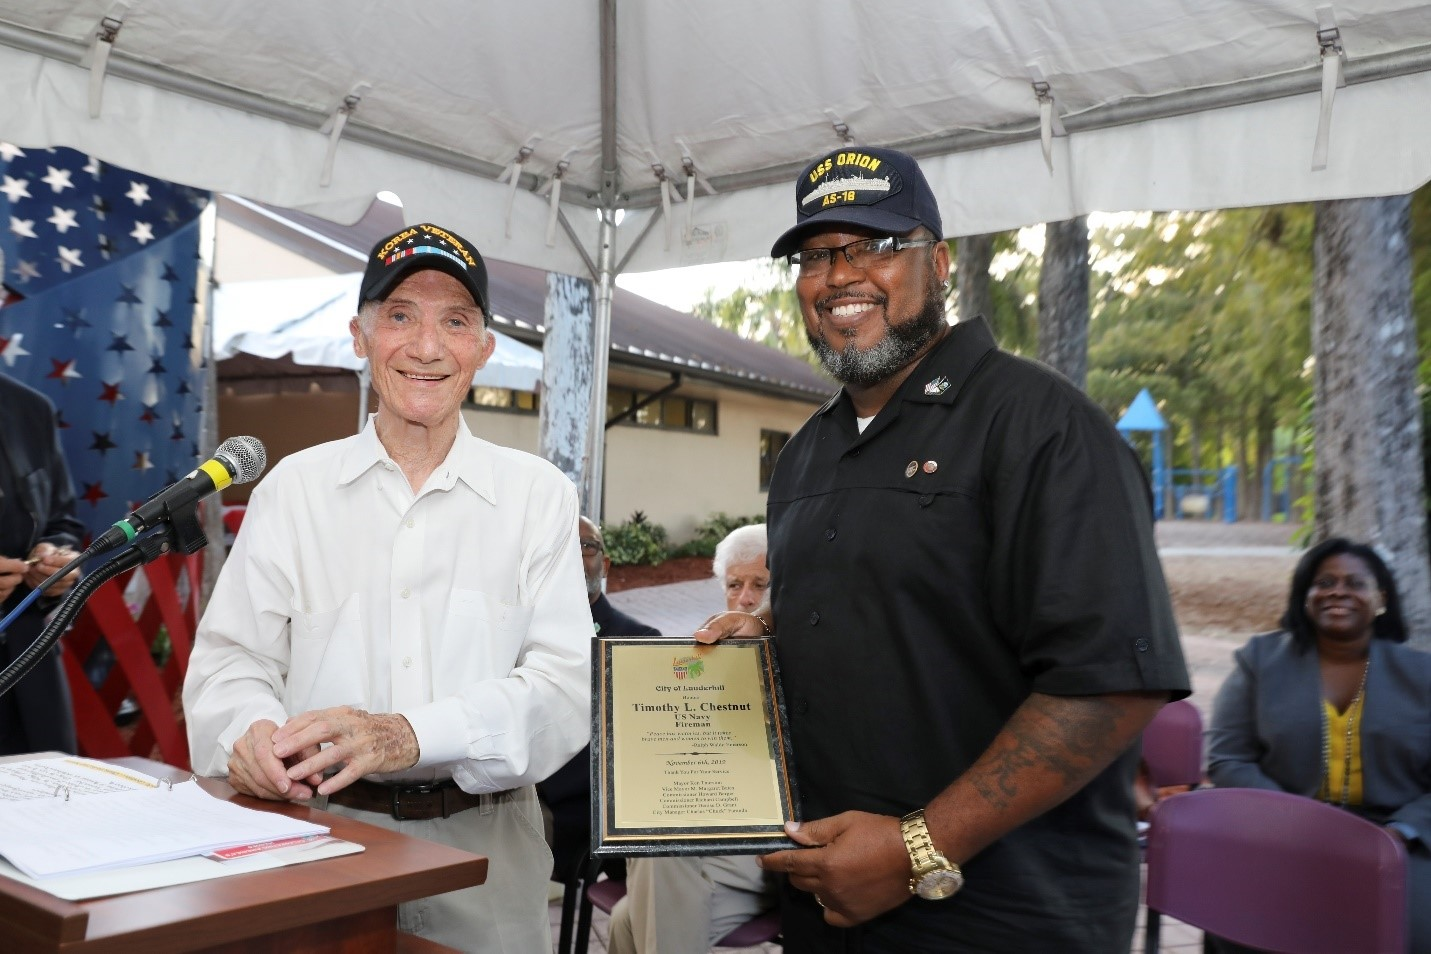 Timothy L Chestnut is commemorated by Korean War Vet at Lauderhill Veterans Recognition Ceremony